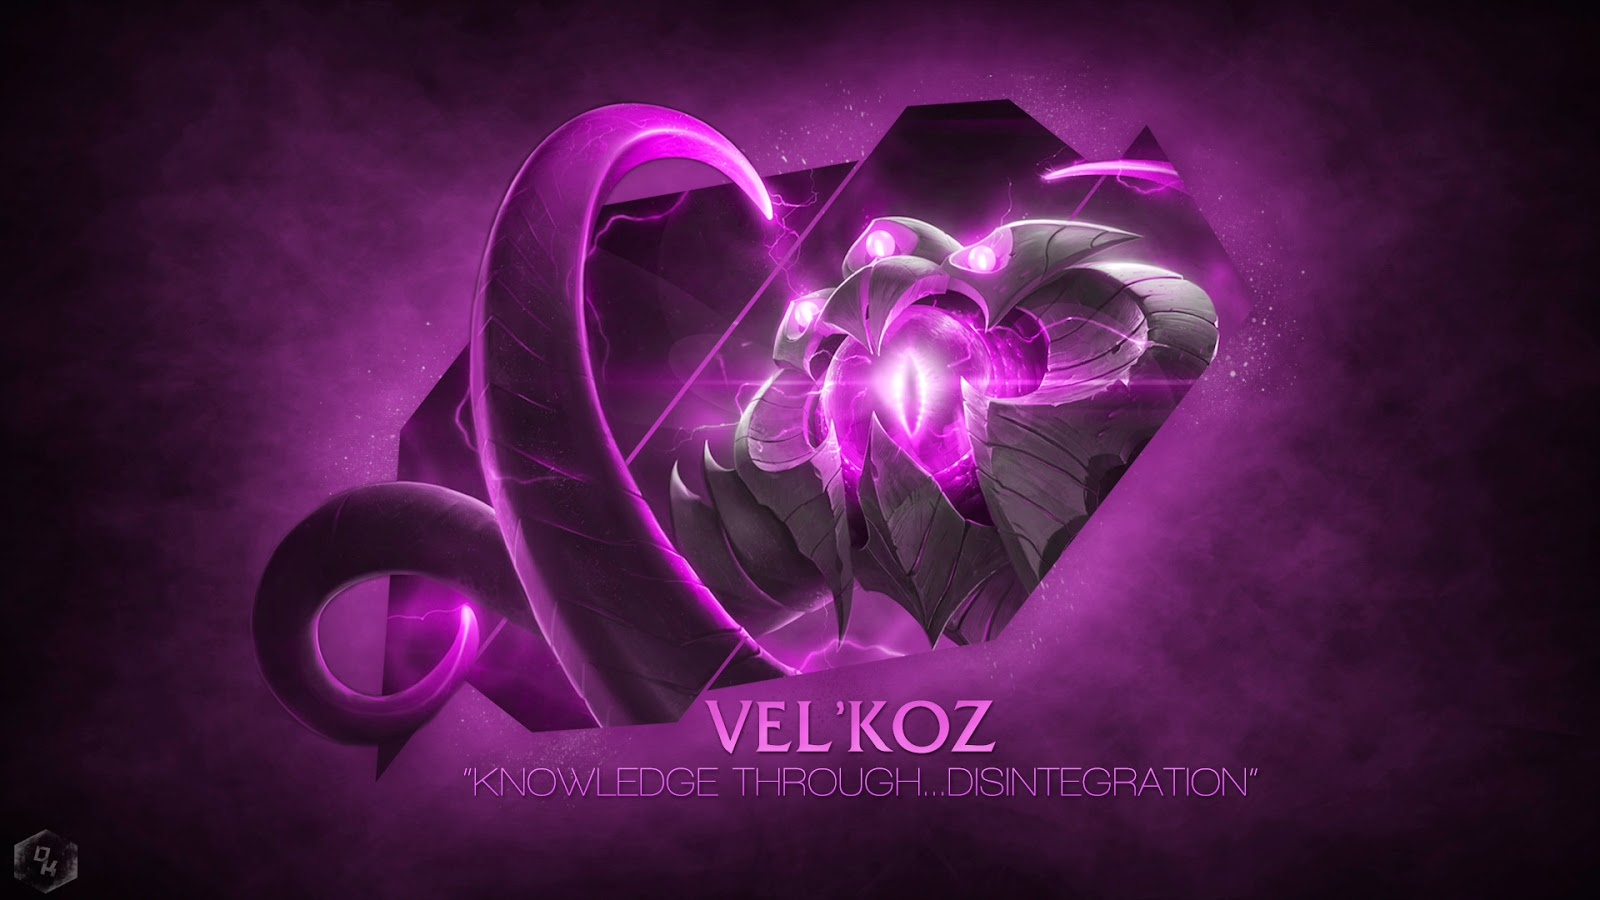 VelKoz League of Legends Wallpaper